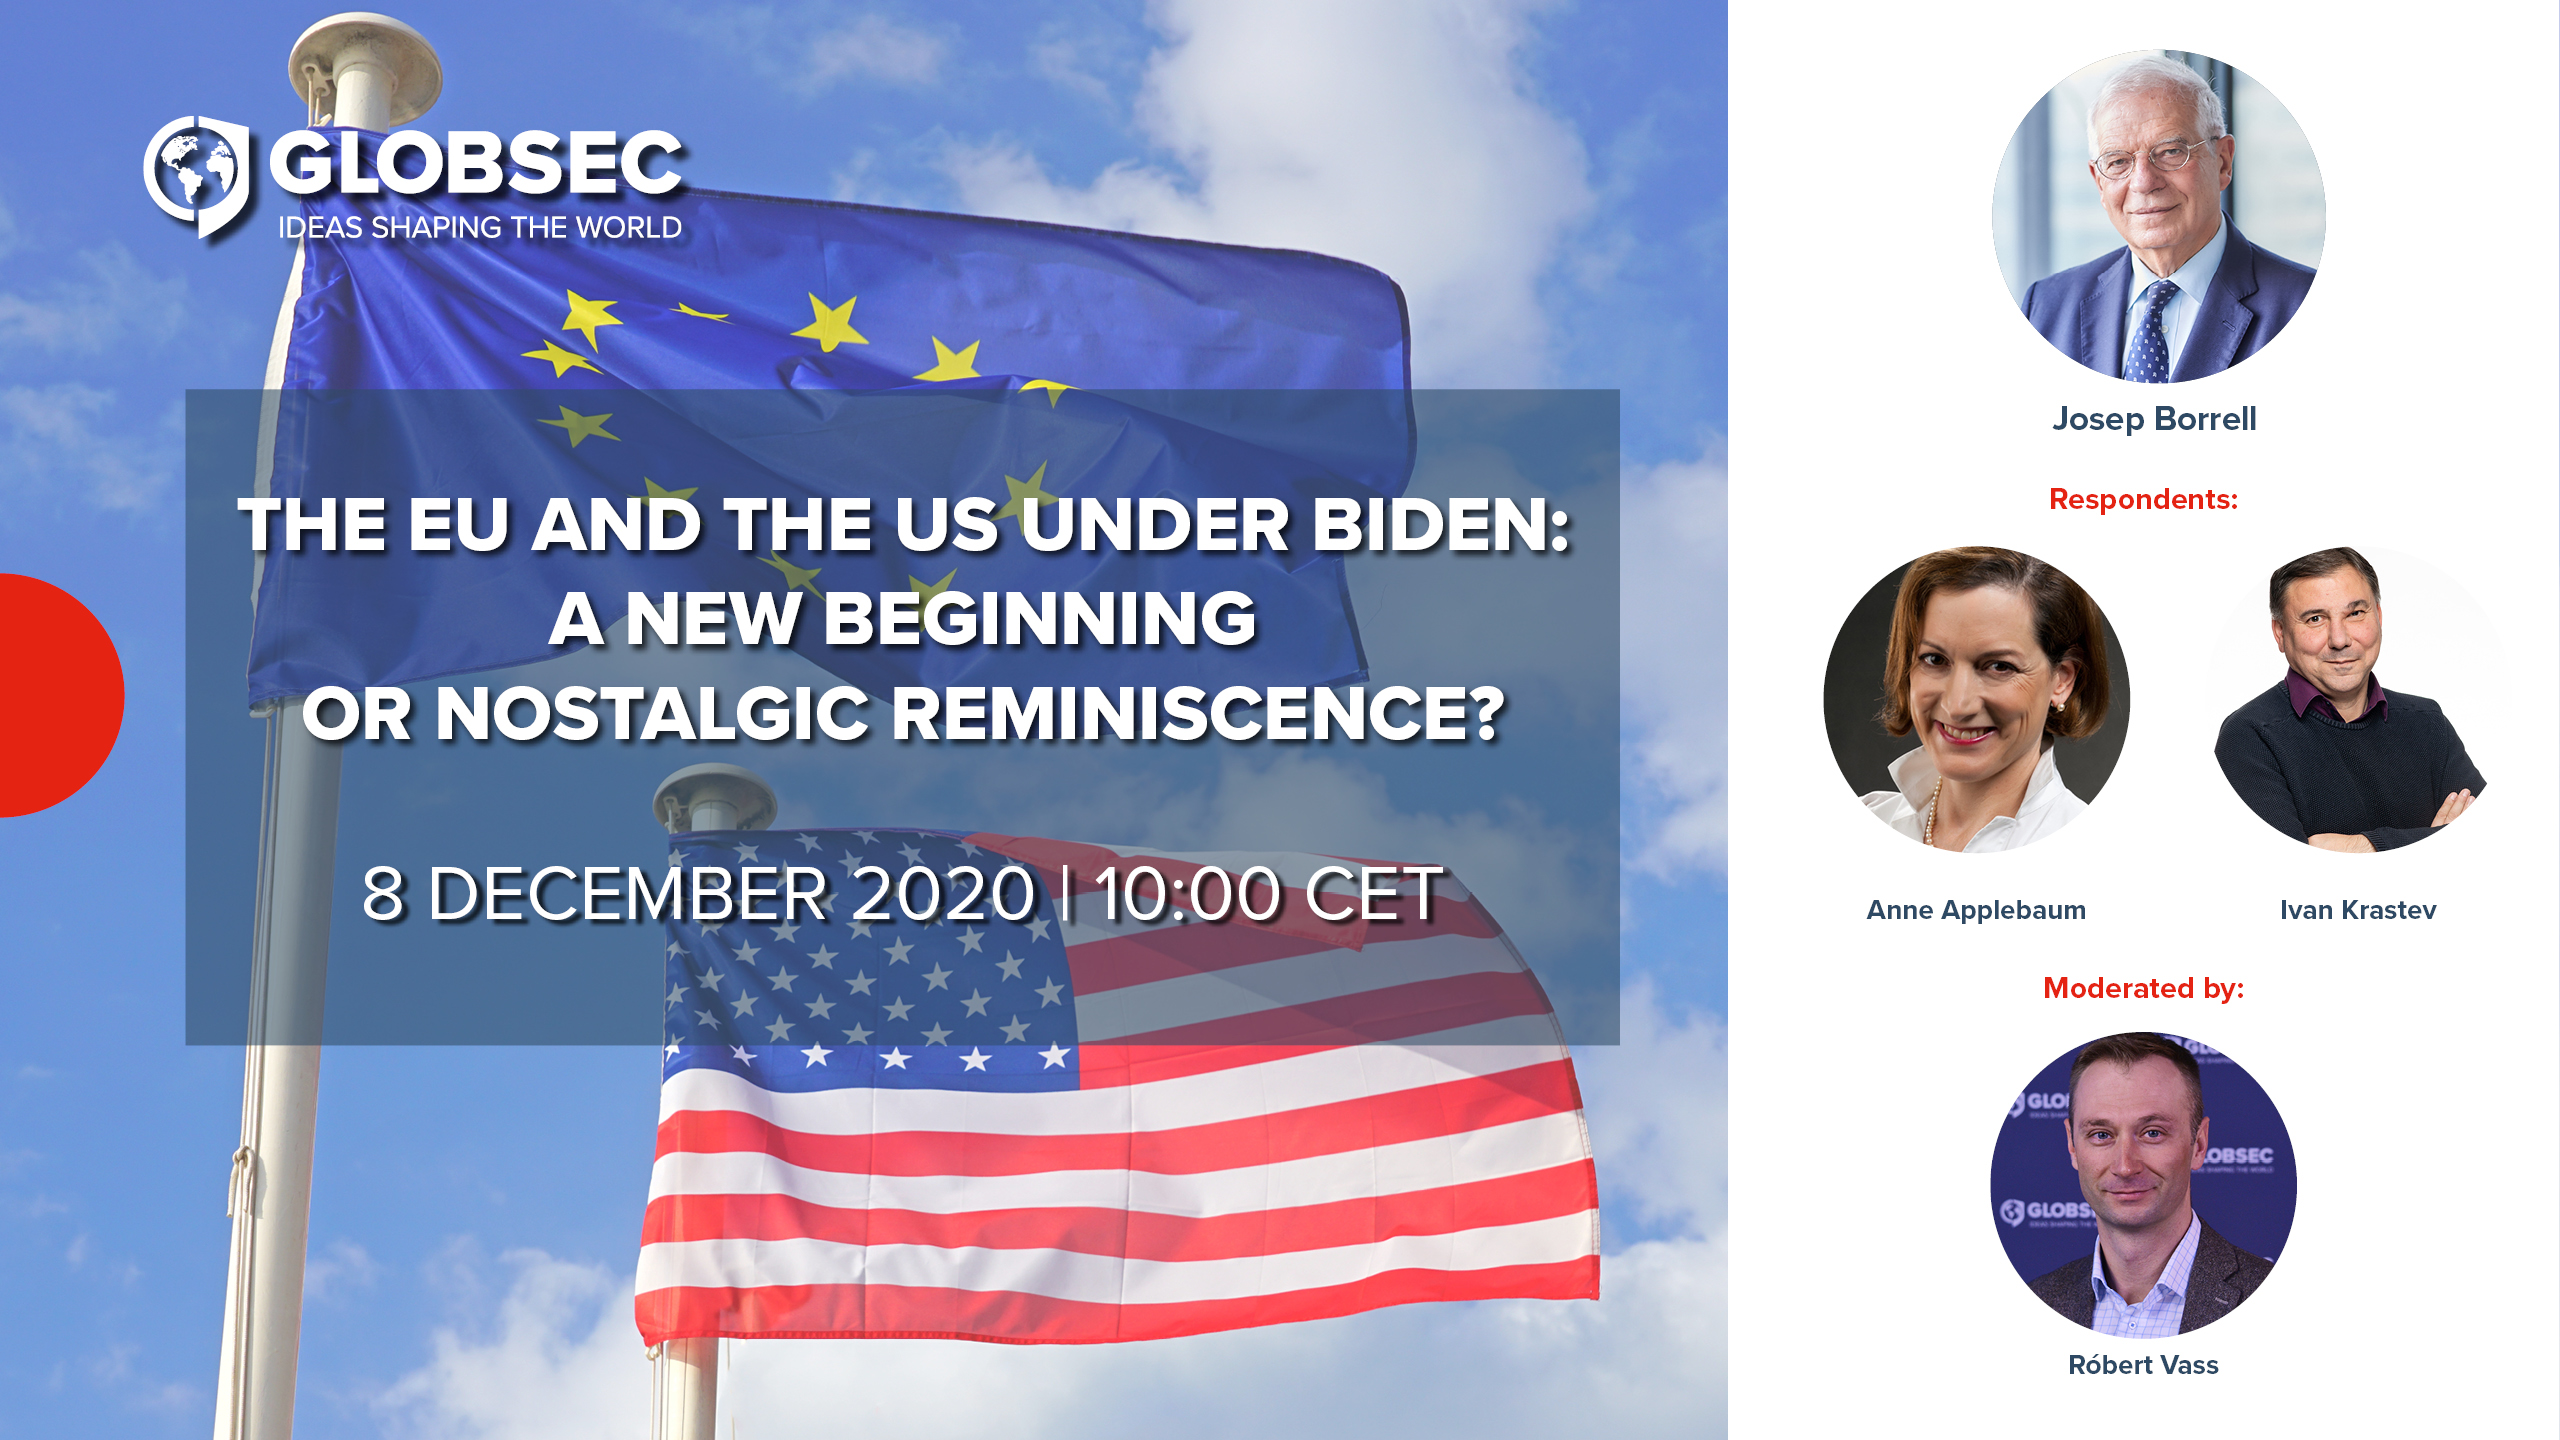 The EU and the US under Biden: A New Beginning or Nostalgic Reminiscence?